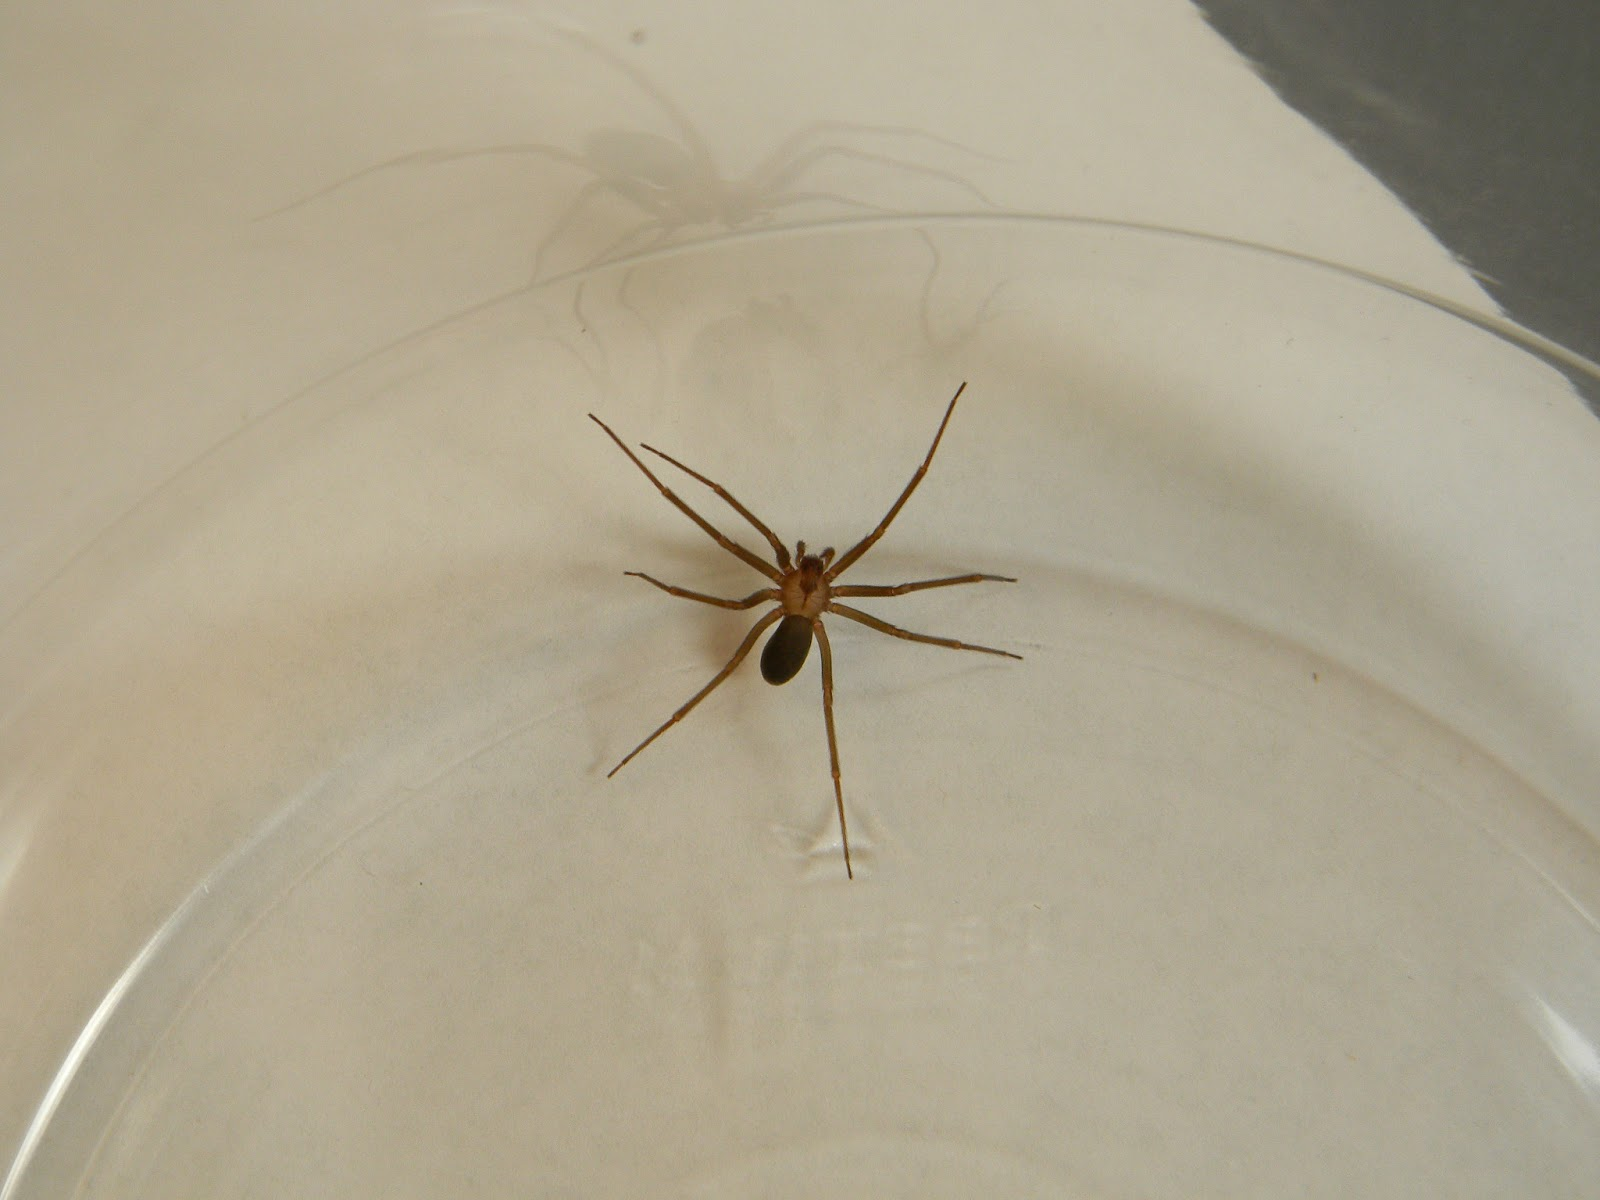 Brown recluse michigan pictures